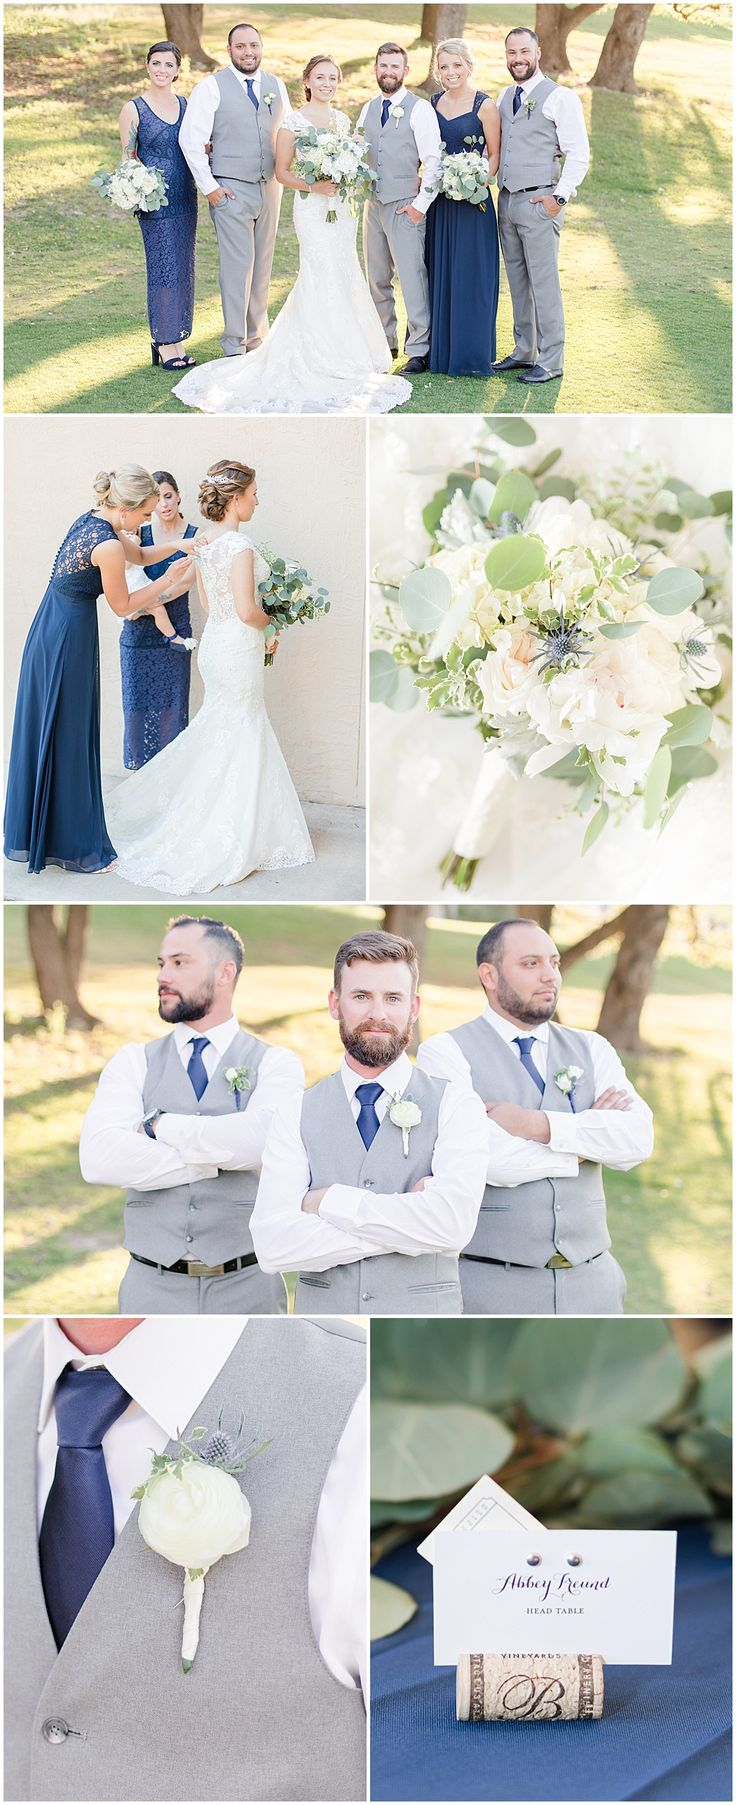 NAVY + GREY WEDDING INSPIRATION | White and Navy Bouquet | Navy Bridesmaids Dresses | Grey The Mrs Box | Navy Silk Ribbon | Grey Groomsmen Suits | Navy and Grey Wedding at Tapatio Springs Resort in Boerne Texas by Allison Jeffers Wedding Photography 0134